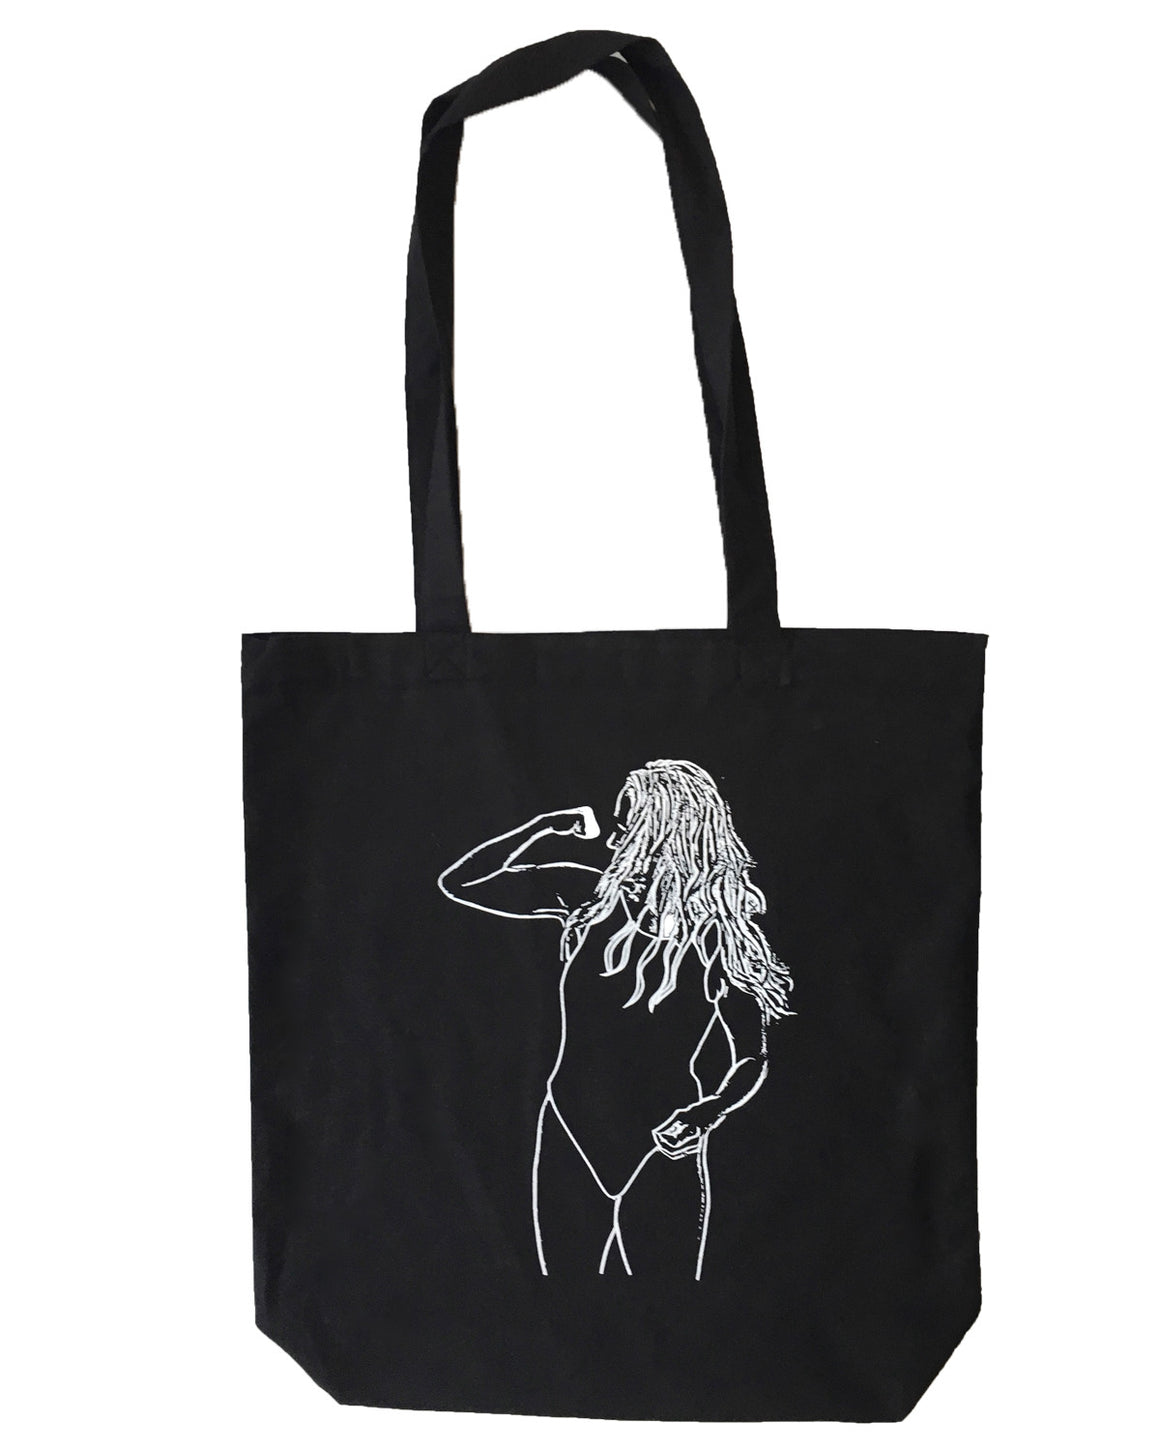 Stole My Heart Tote